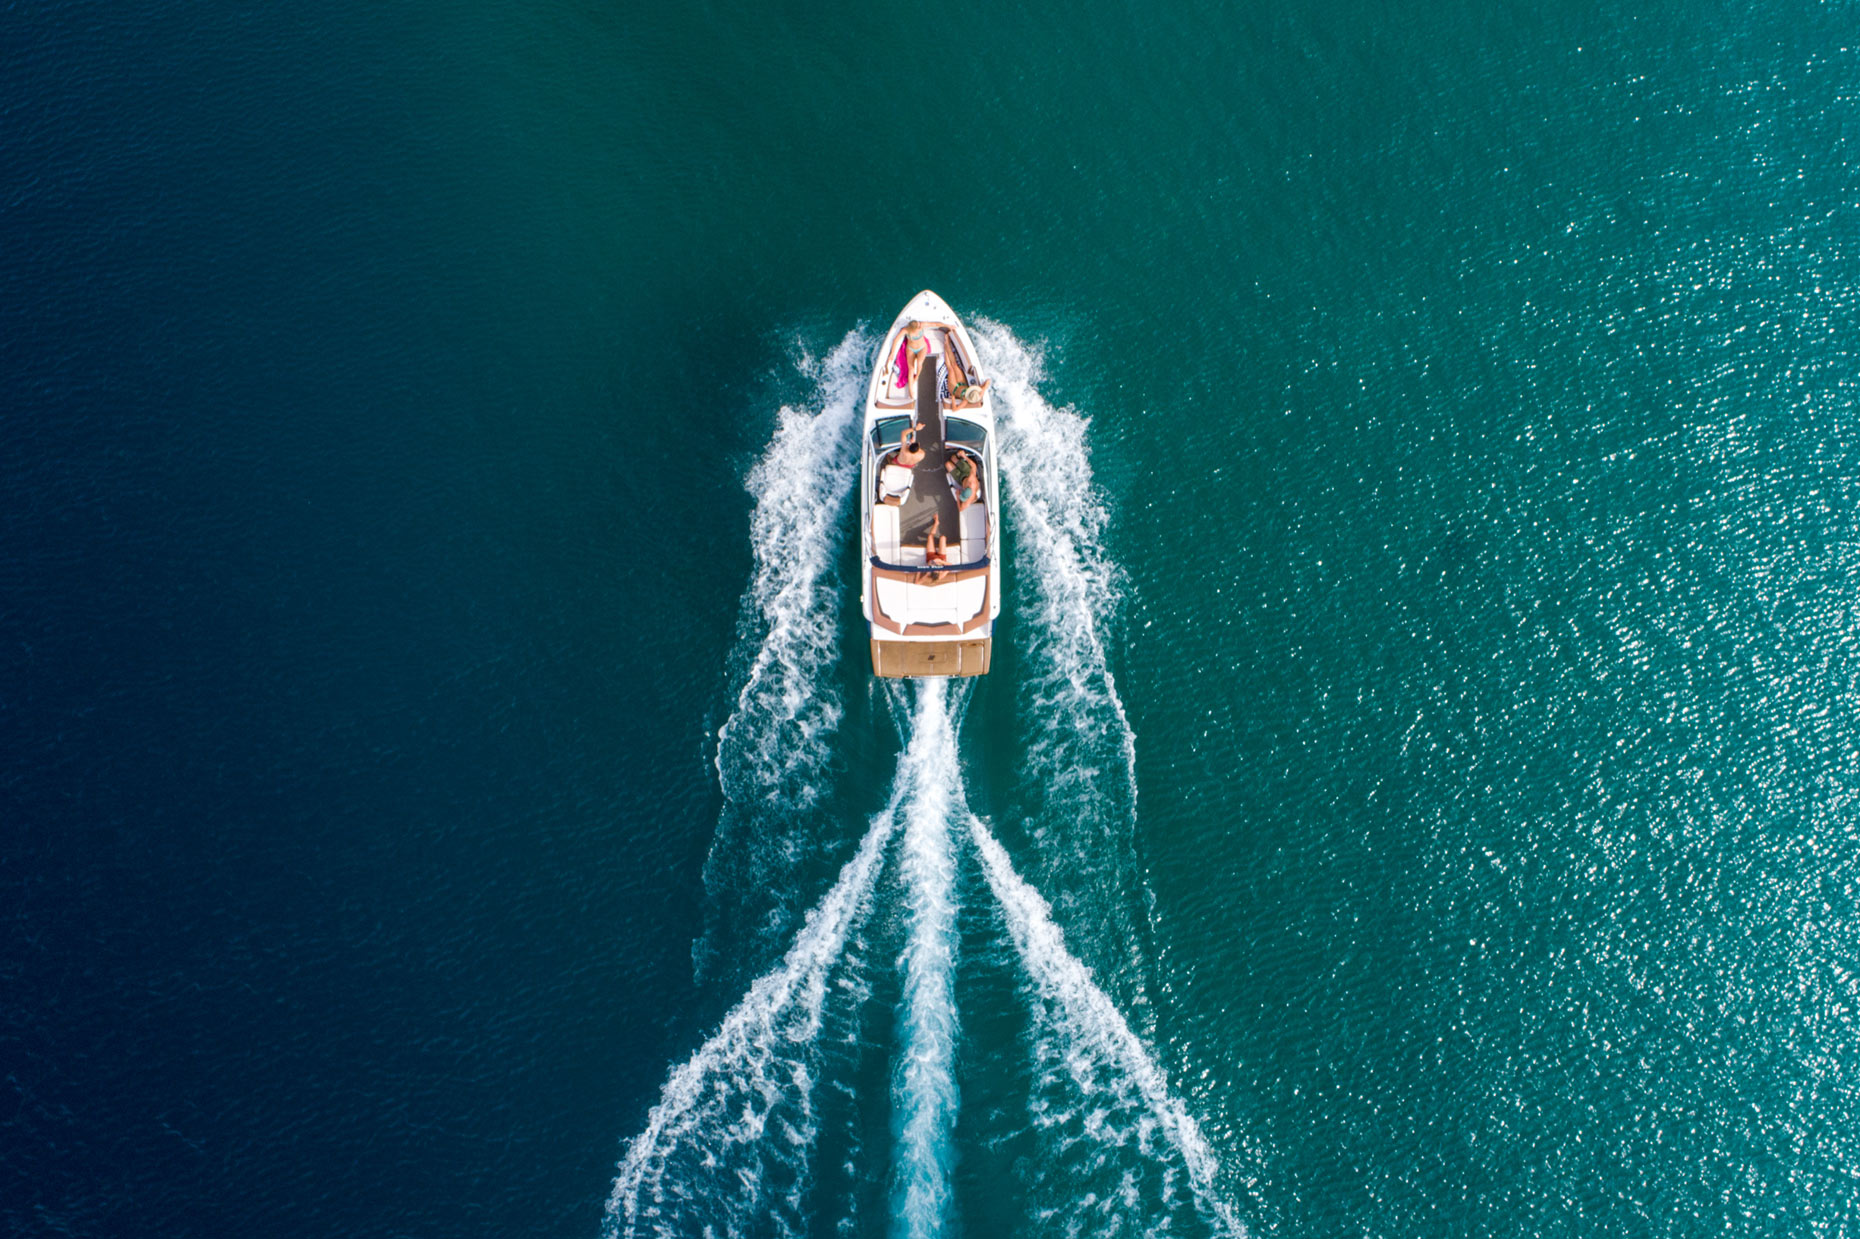 Drone - Boat Lake Tahoe, California